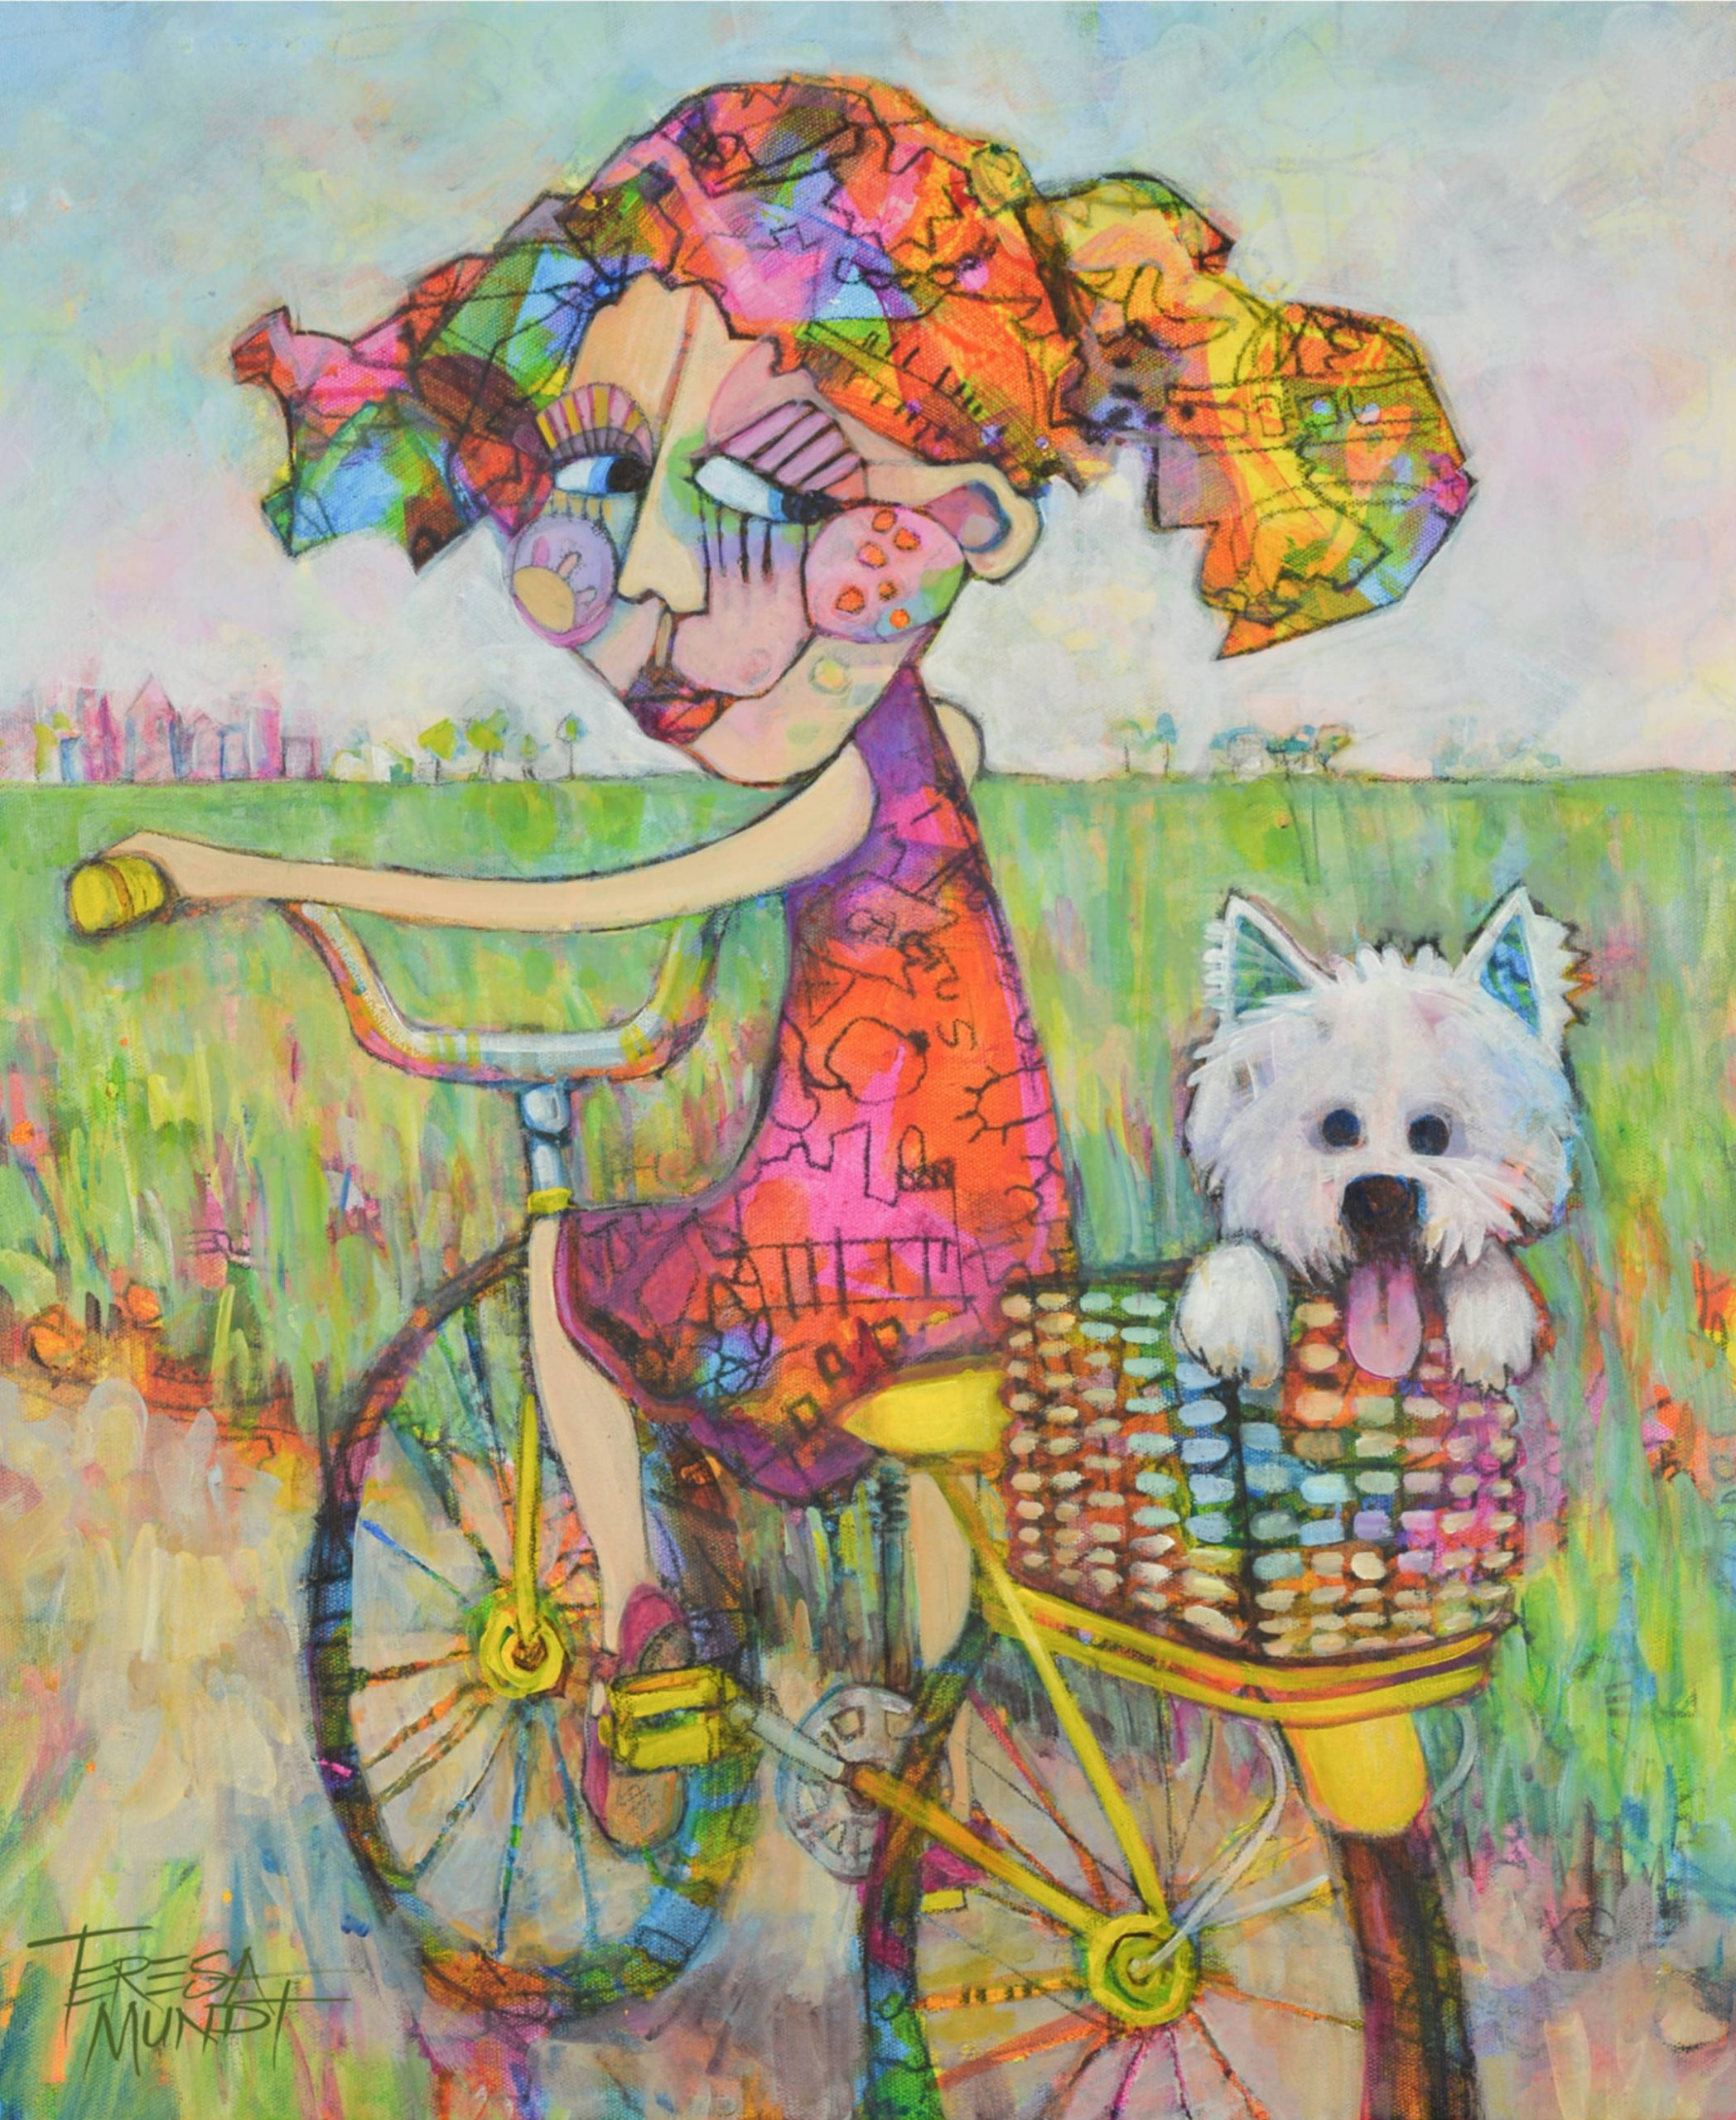 Driving Miss Daisy By Teresa Mundt Colourful Colorful Girl Dog Puppy Bike Bicycle Landscape Painting